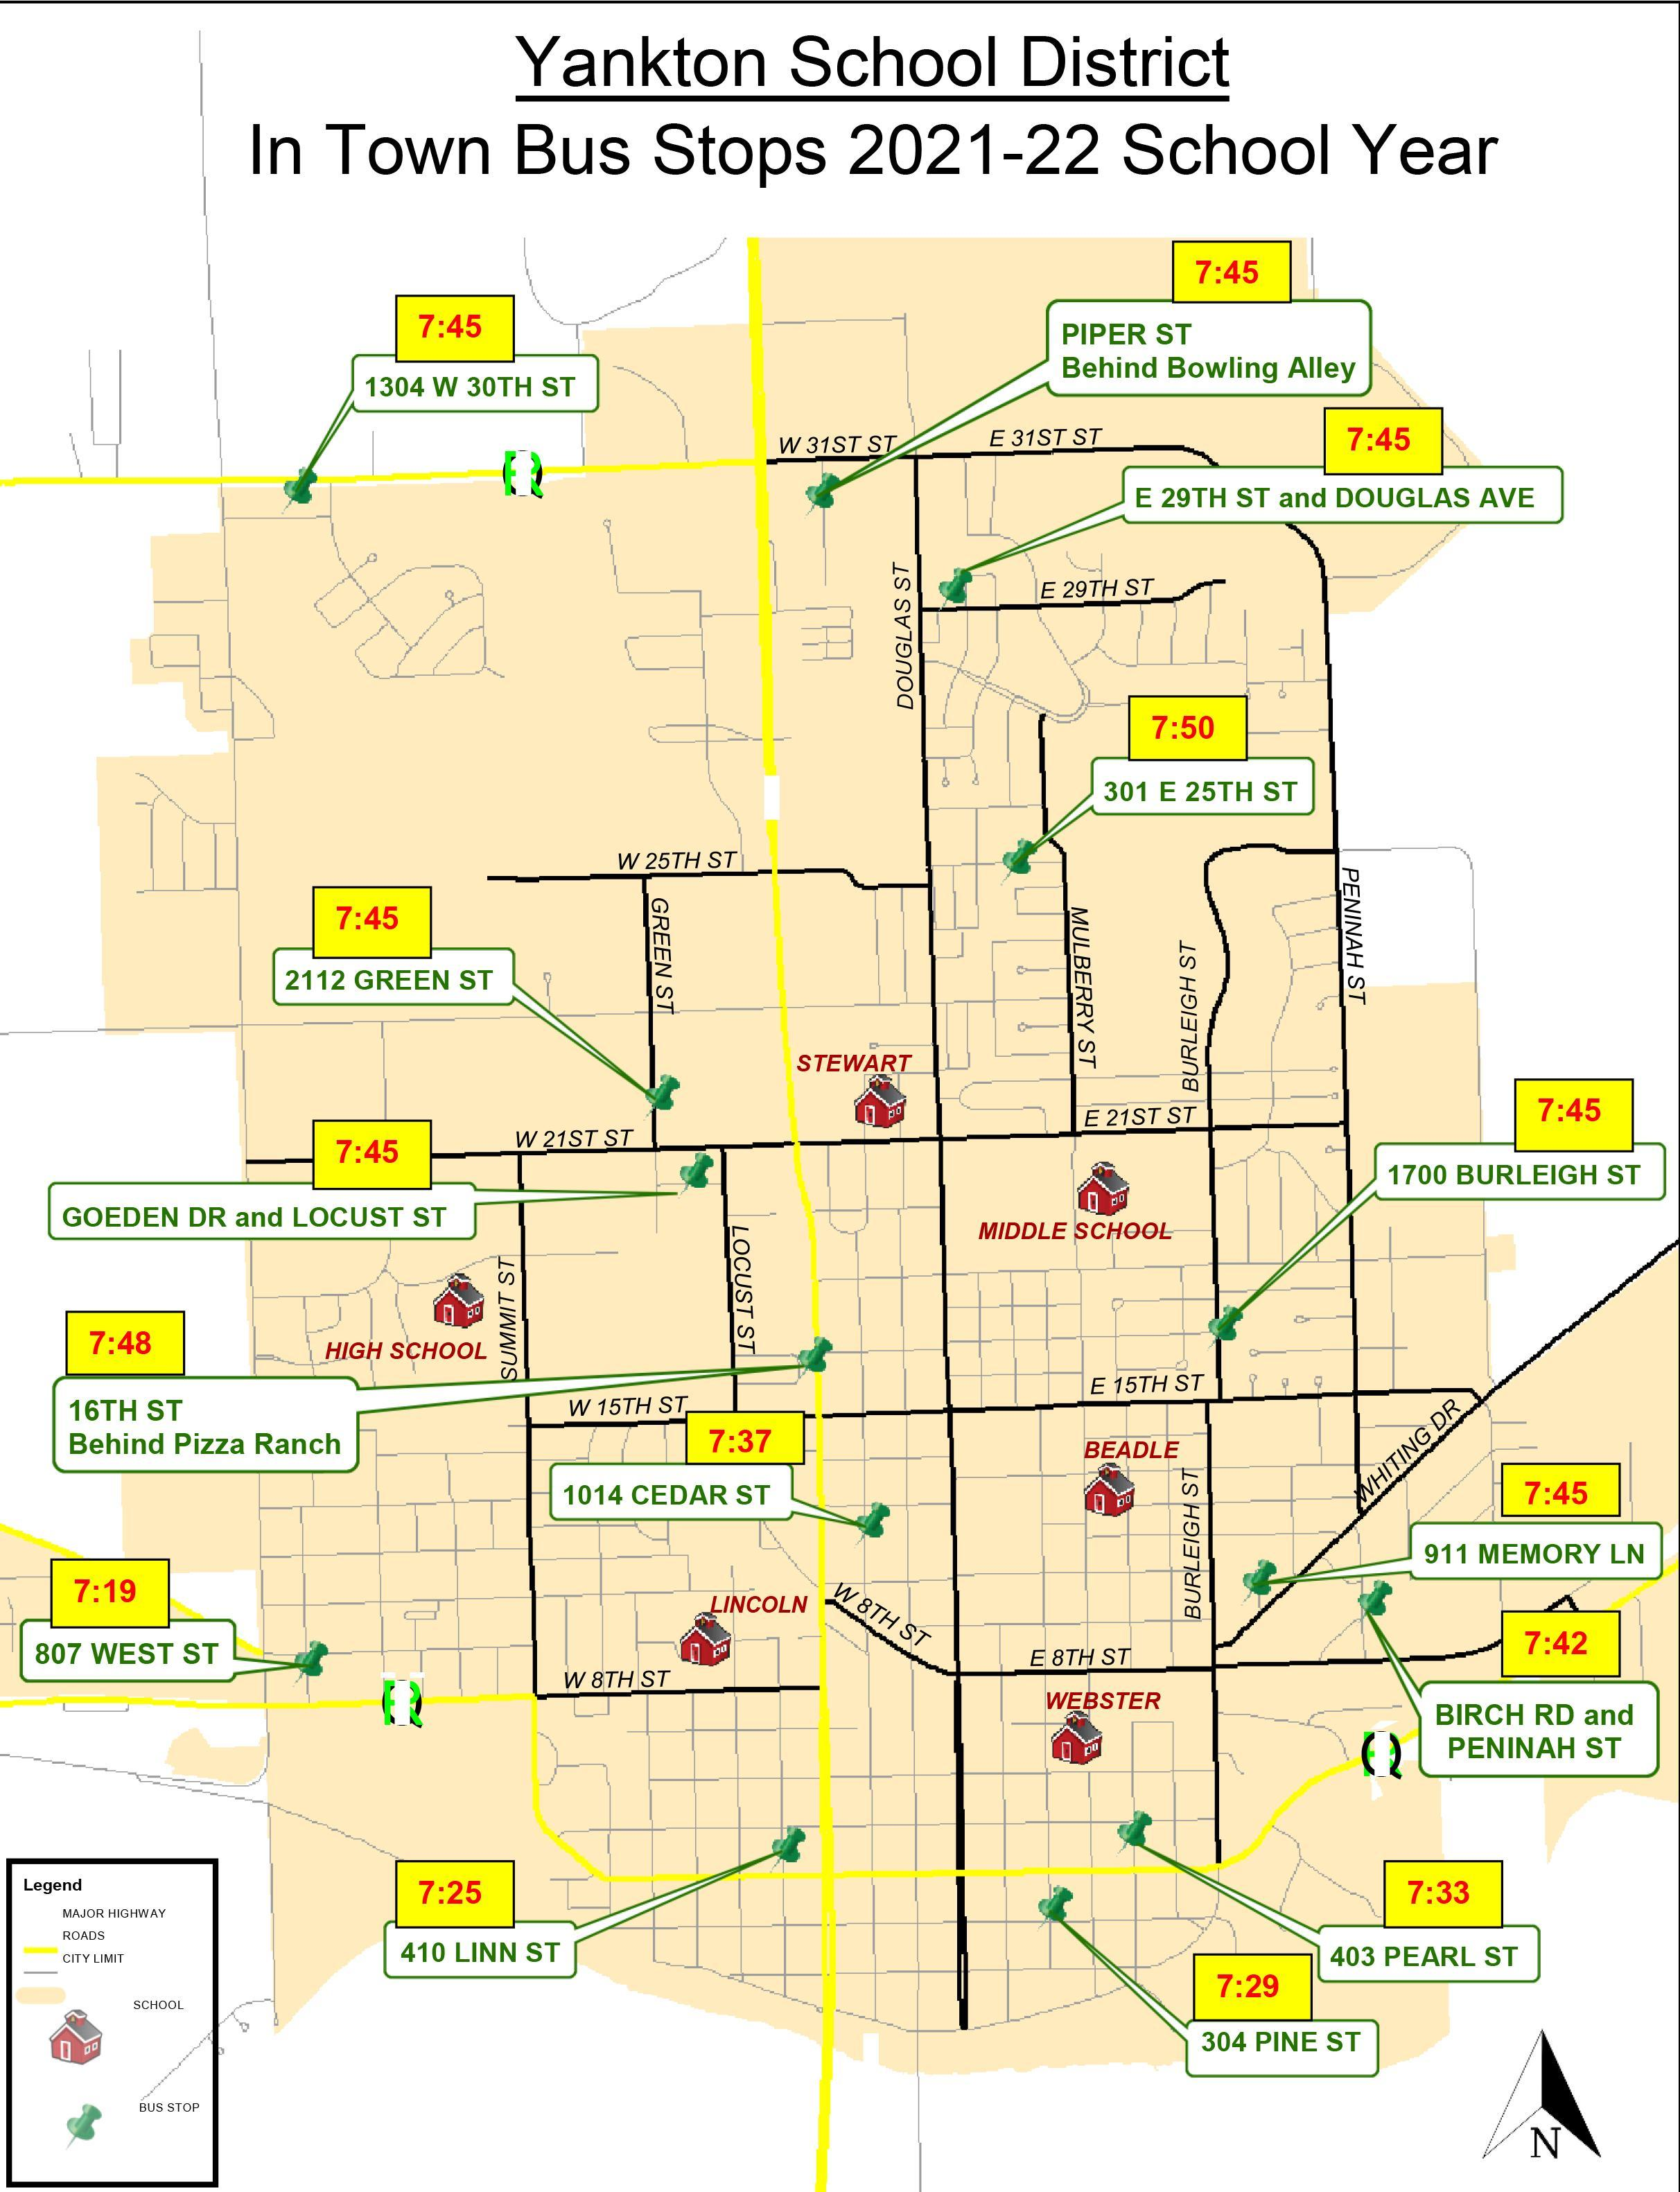 In Town Transportation Map & Stop Times 2021-22